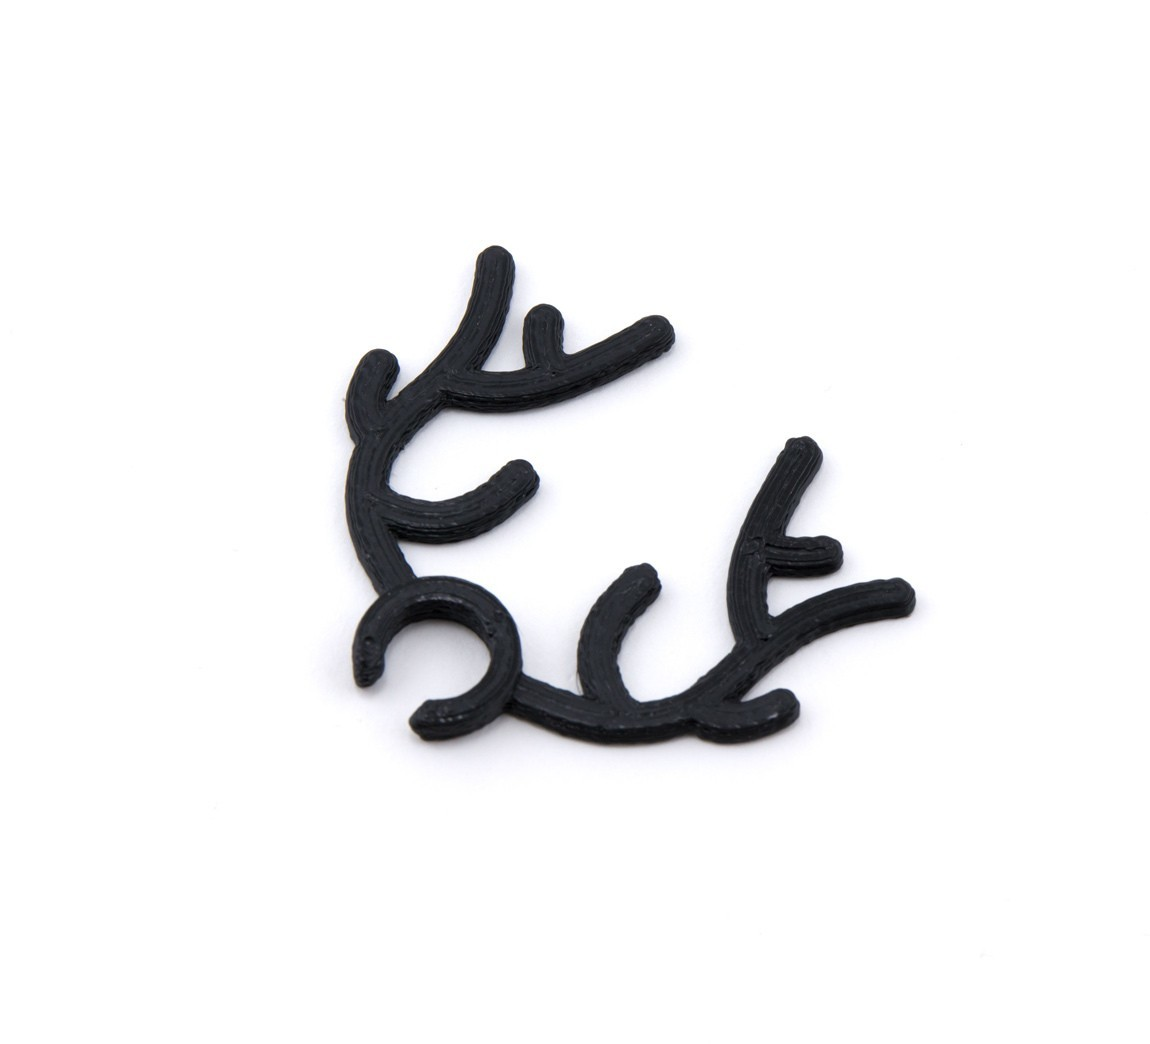 718d3766ef67774db2cd9fcba4007d73_1449865471873_NMD000890-4.jpg Download free STL file Candy Cane Reindeer Antlers • Design to 3D print, Hom3d